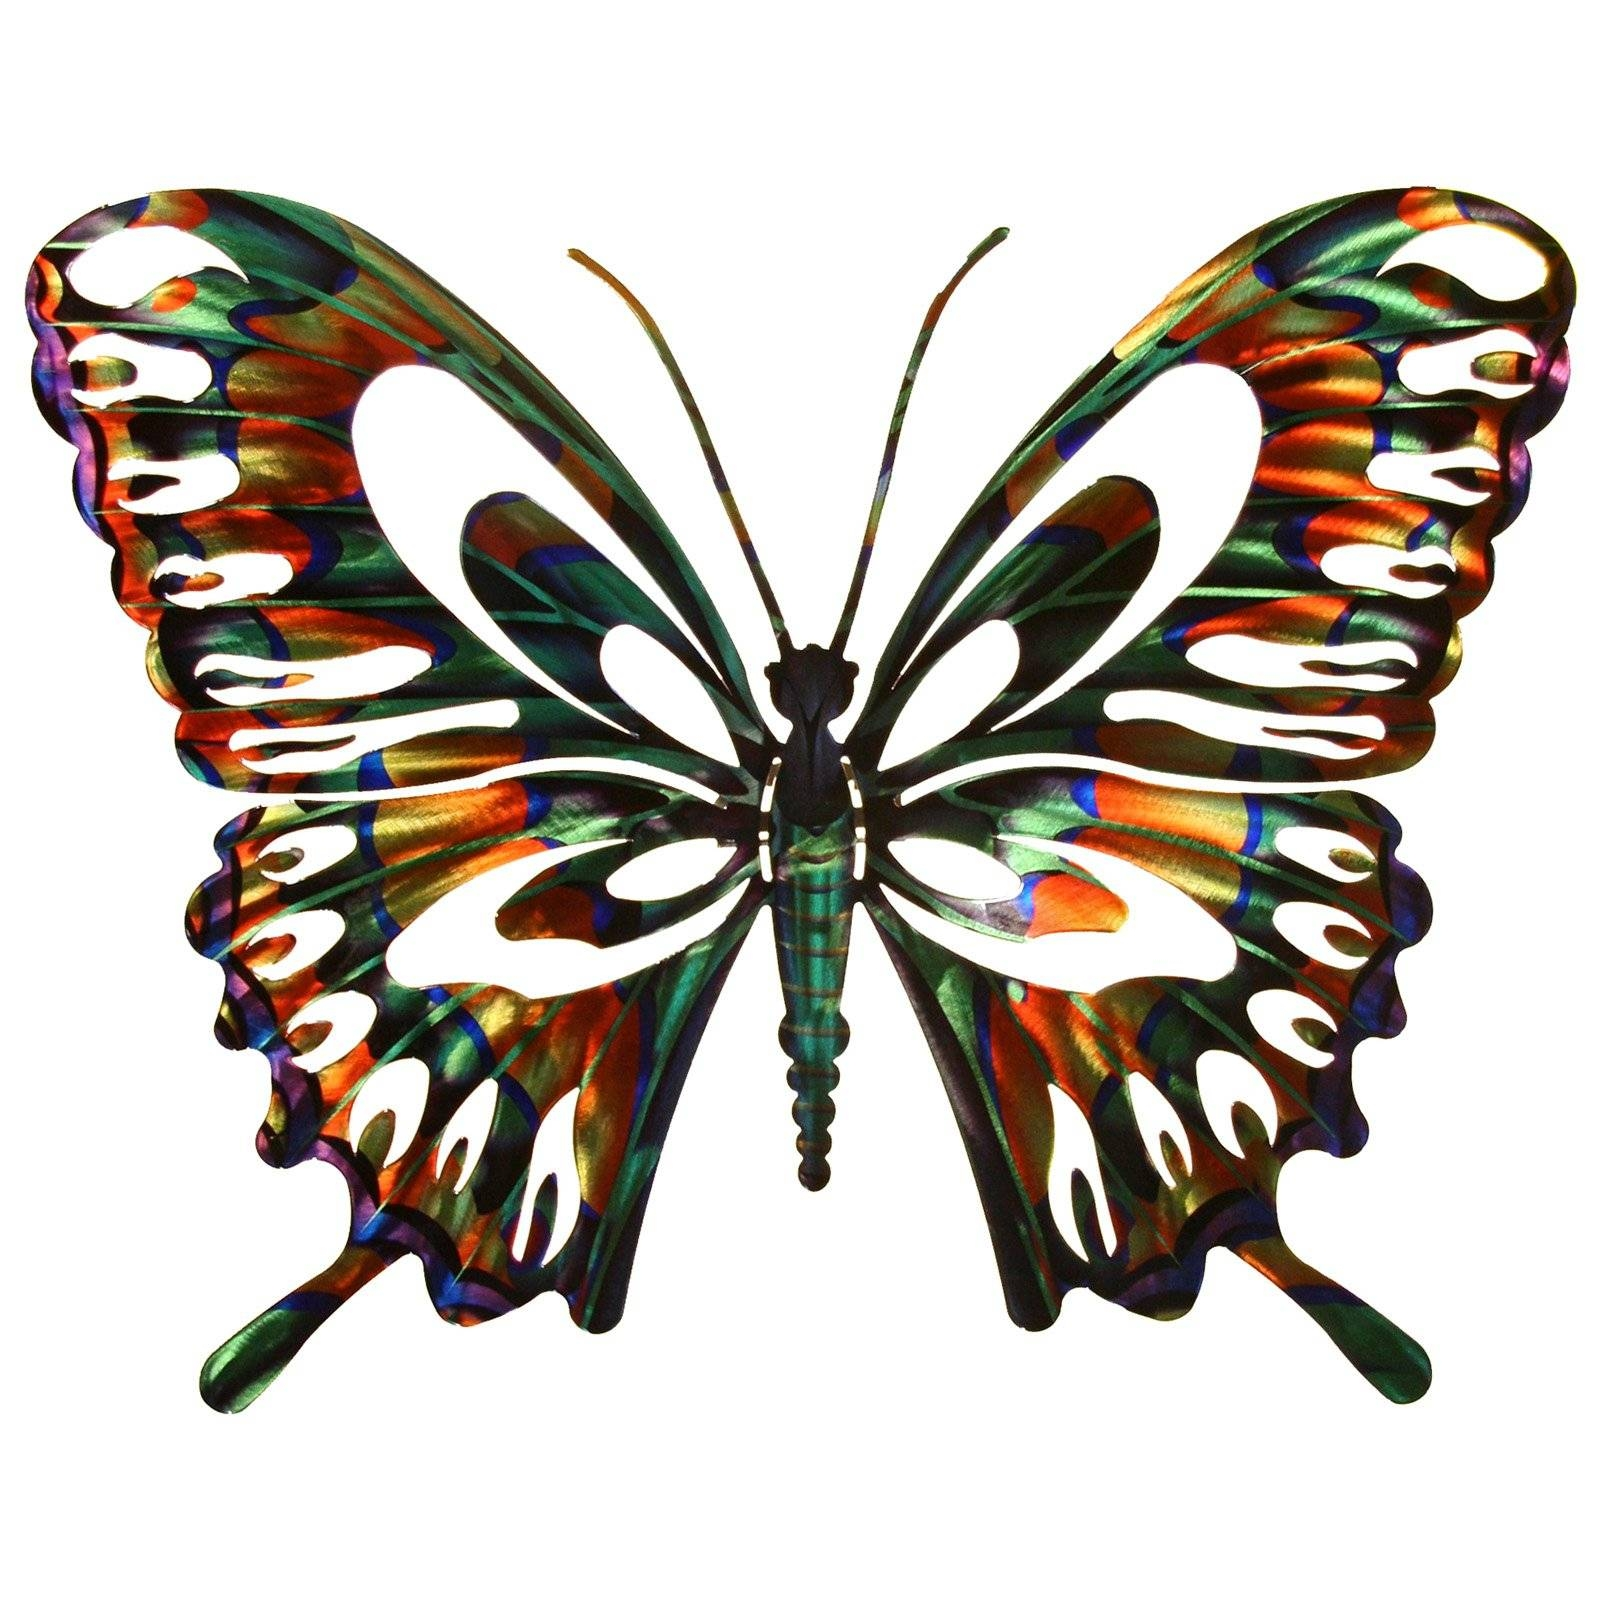 3D Butterfly Metal Outdoor Wall Art | Hayneedle Within Most Up To Date Metal Wall Art For Outdoors (Gallery 18 of 20)